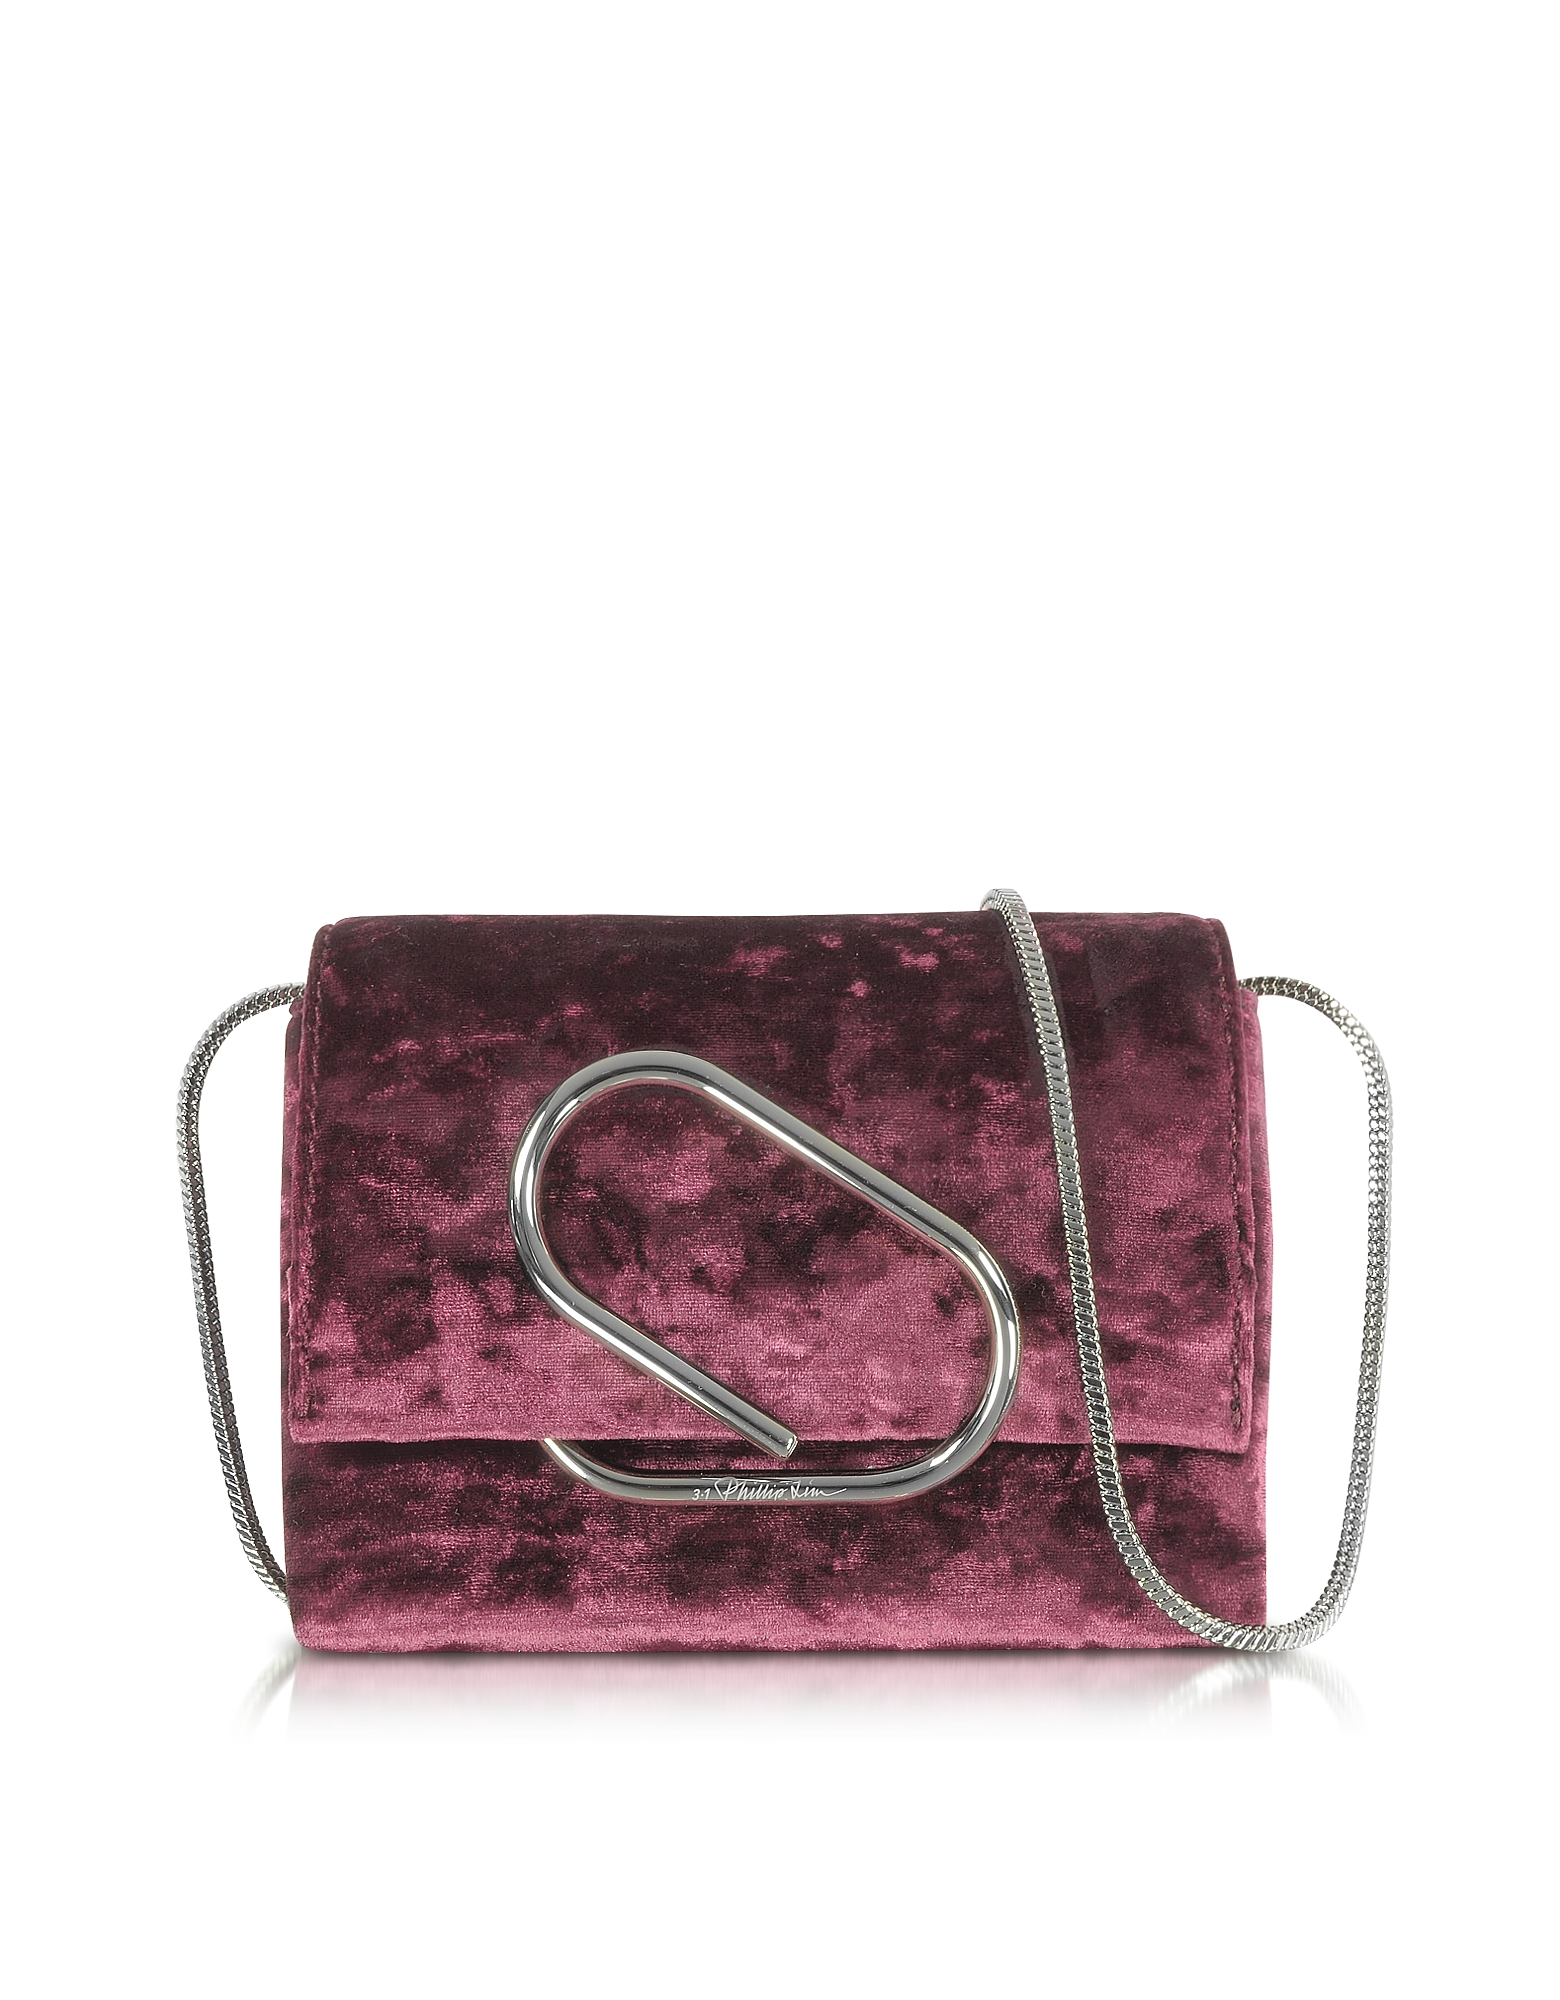 3.1 Phillip Lim Handbags, Syrah Alix Micro Crossbody Bag